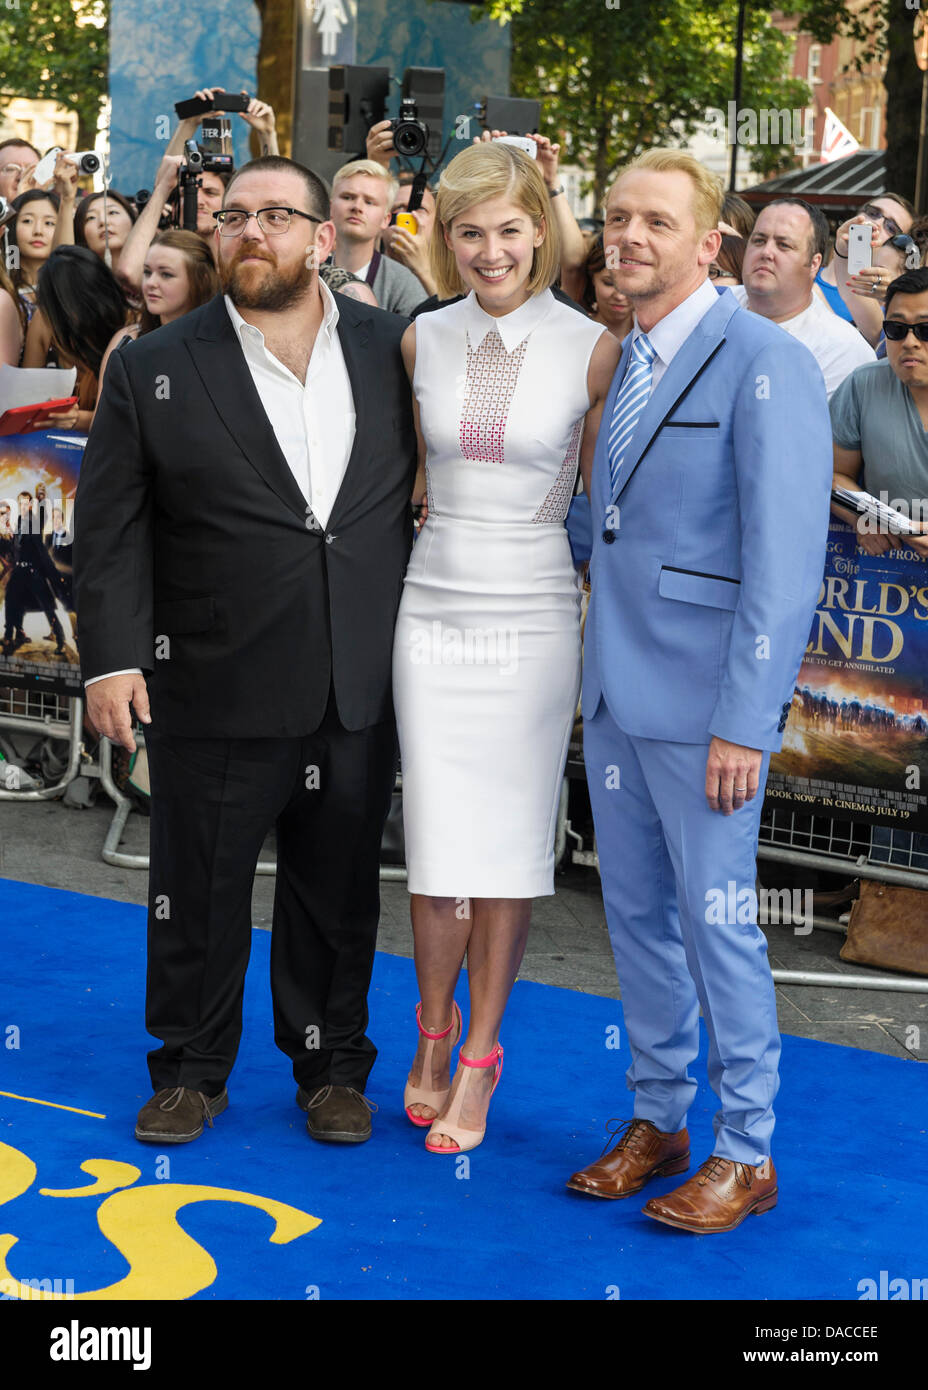 The Cast attends the World Premiere of The World's End on 10/07/2013 at Empire Leicester Square, London. Persons - Stock Image